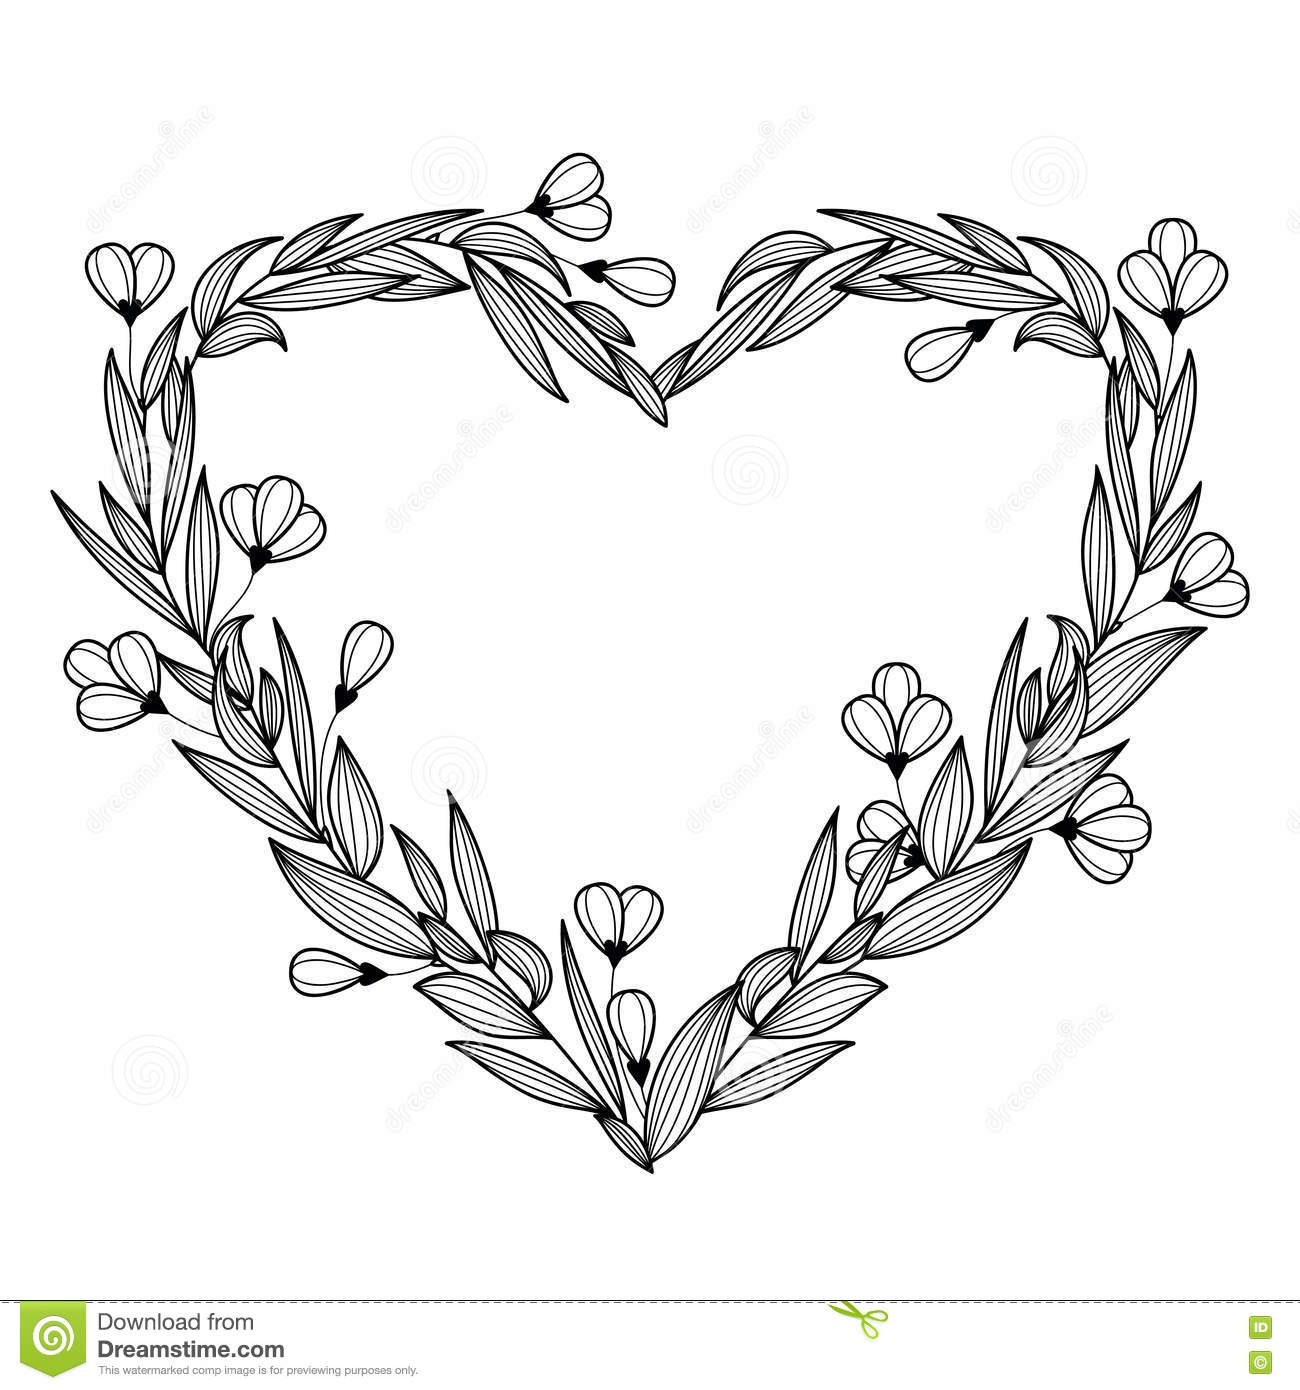 Hand Drawn Vintage Floral Wreath In The Shape Of Heart Vector I